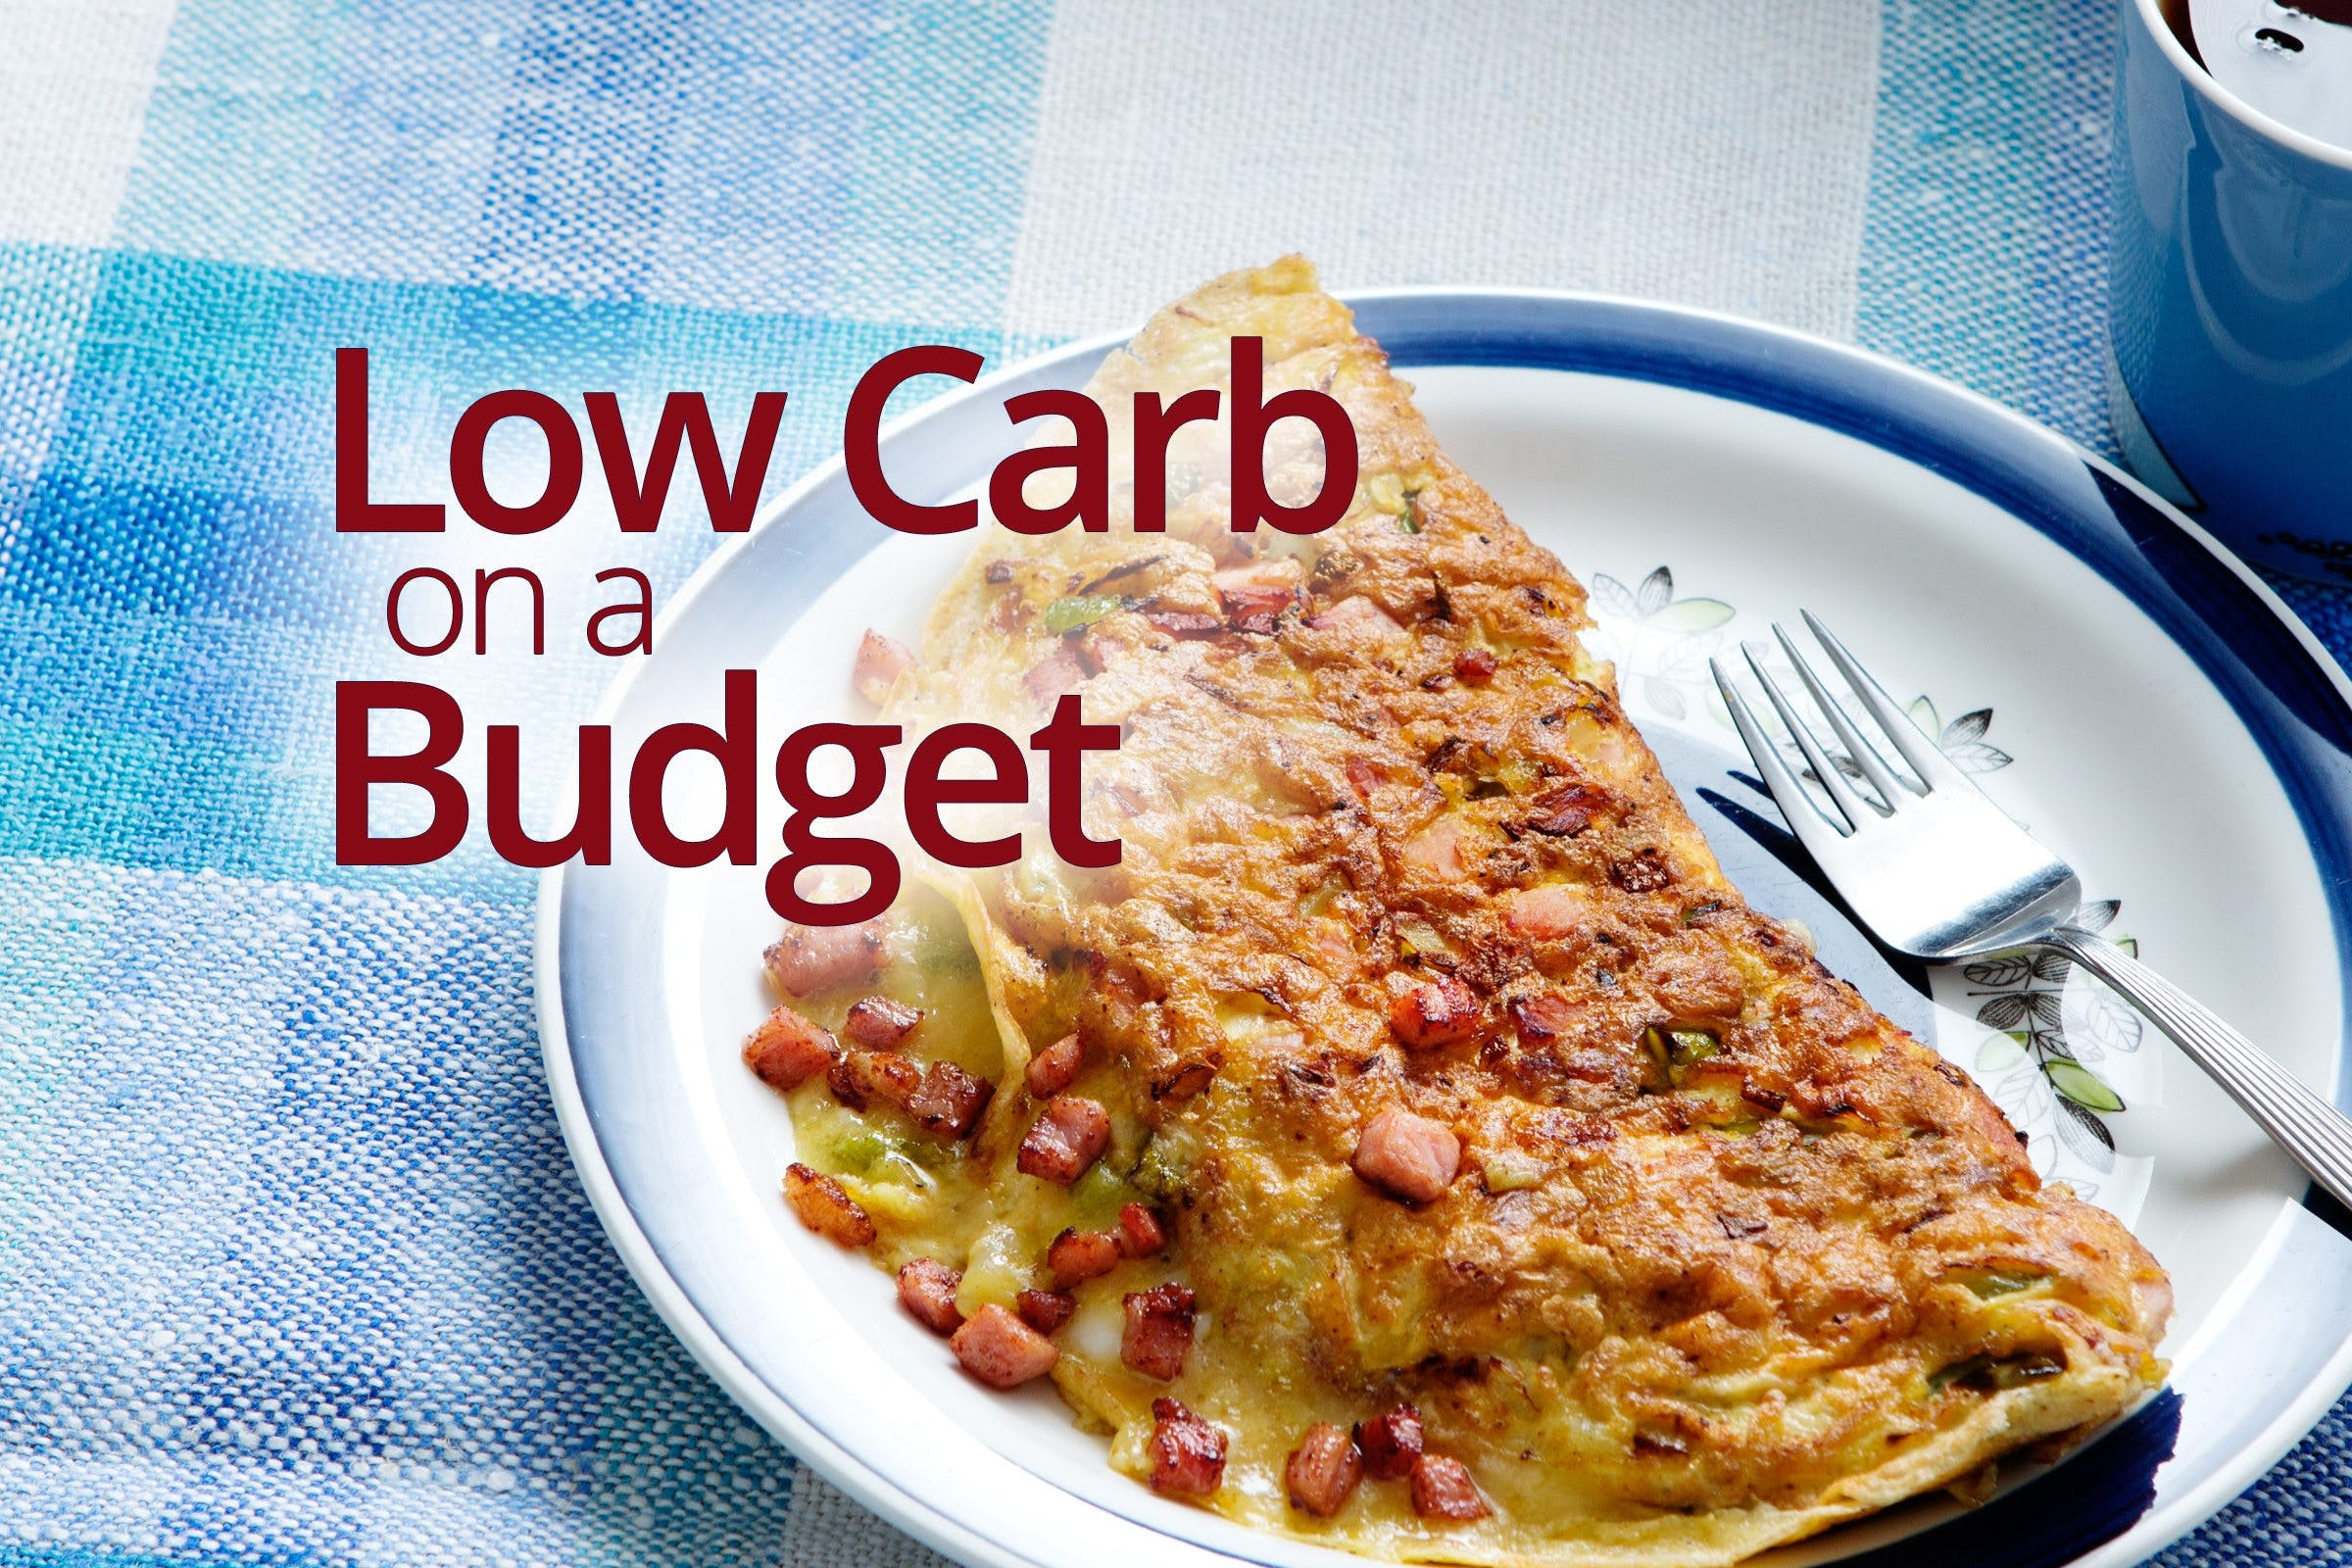 Linda'S Low Carb Recipes  Low Carb and Keto on a Bud Money Saving Tips Diet